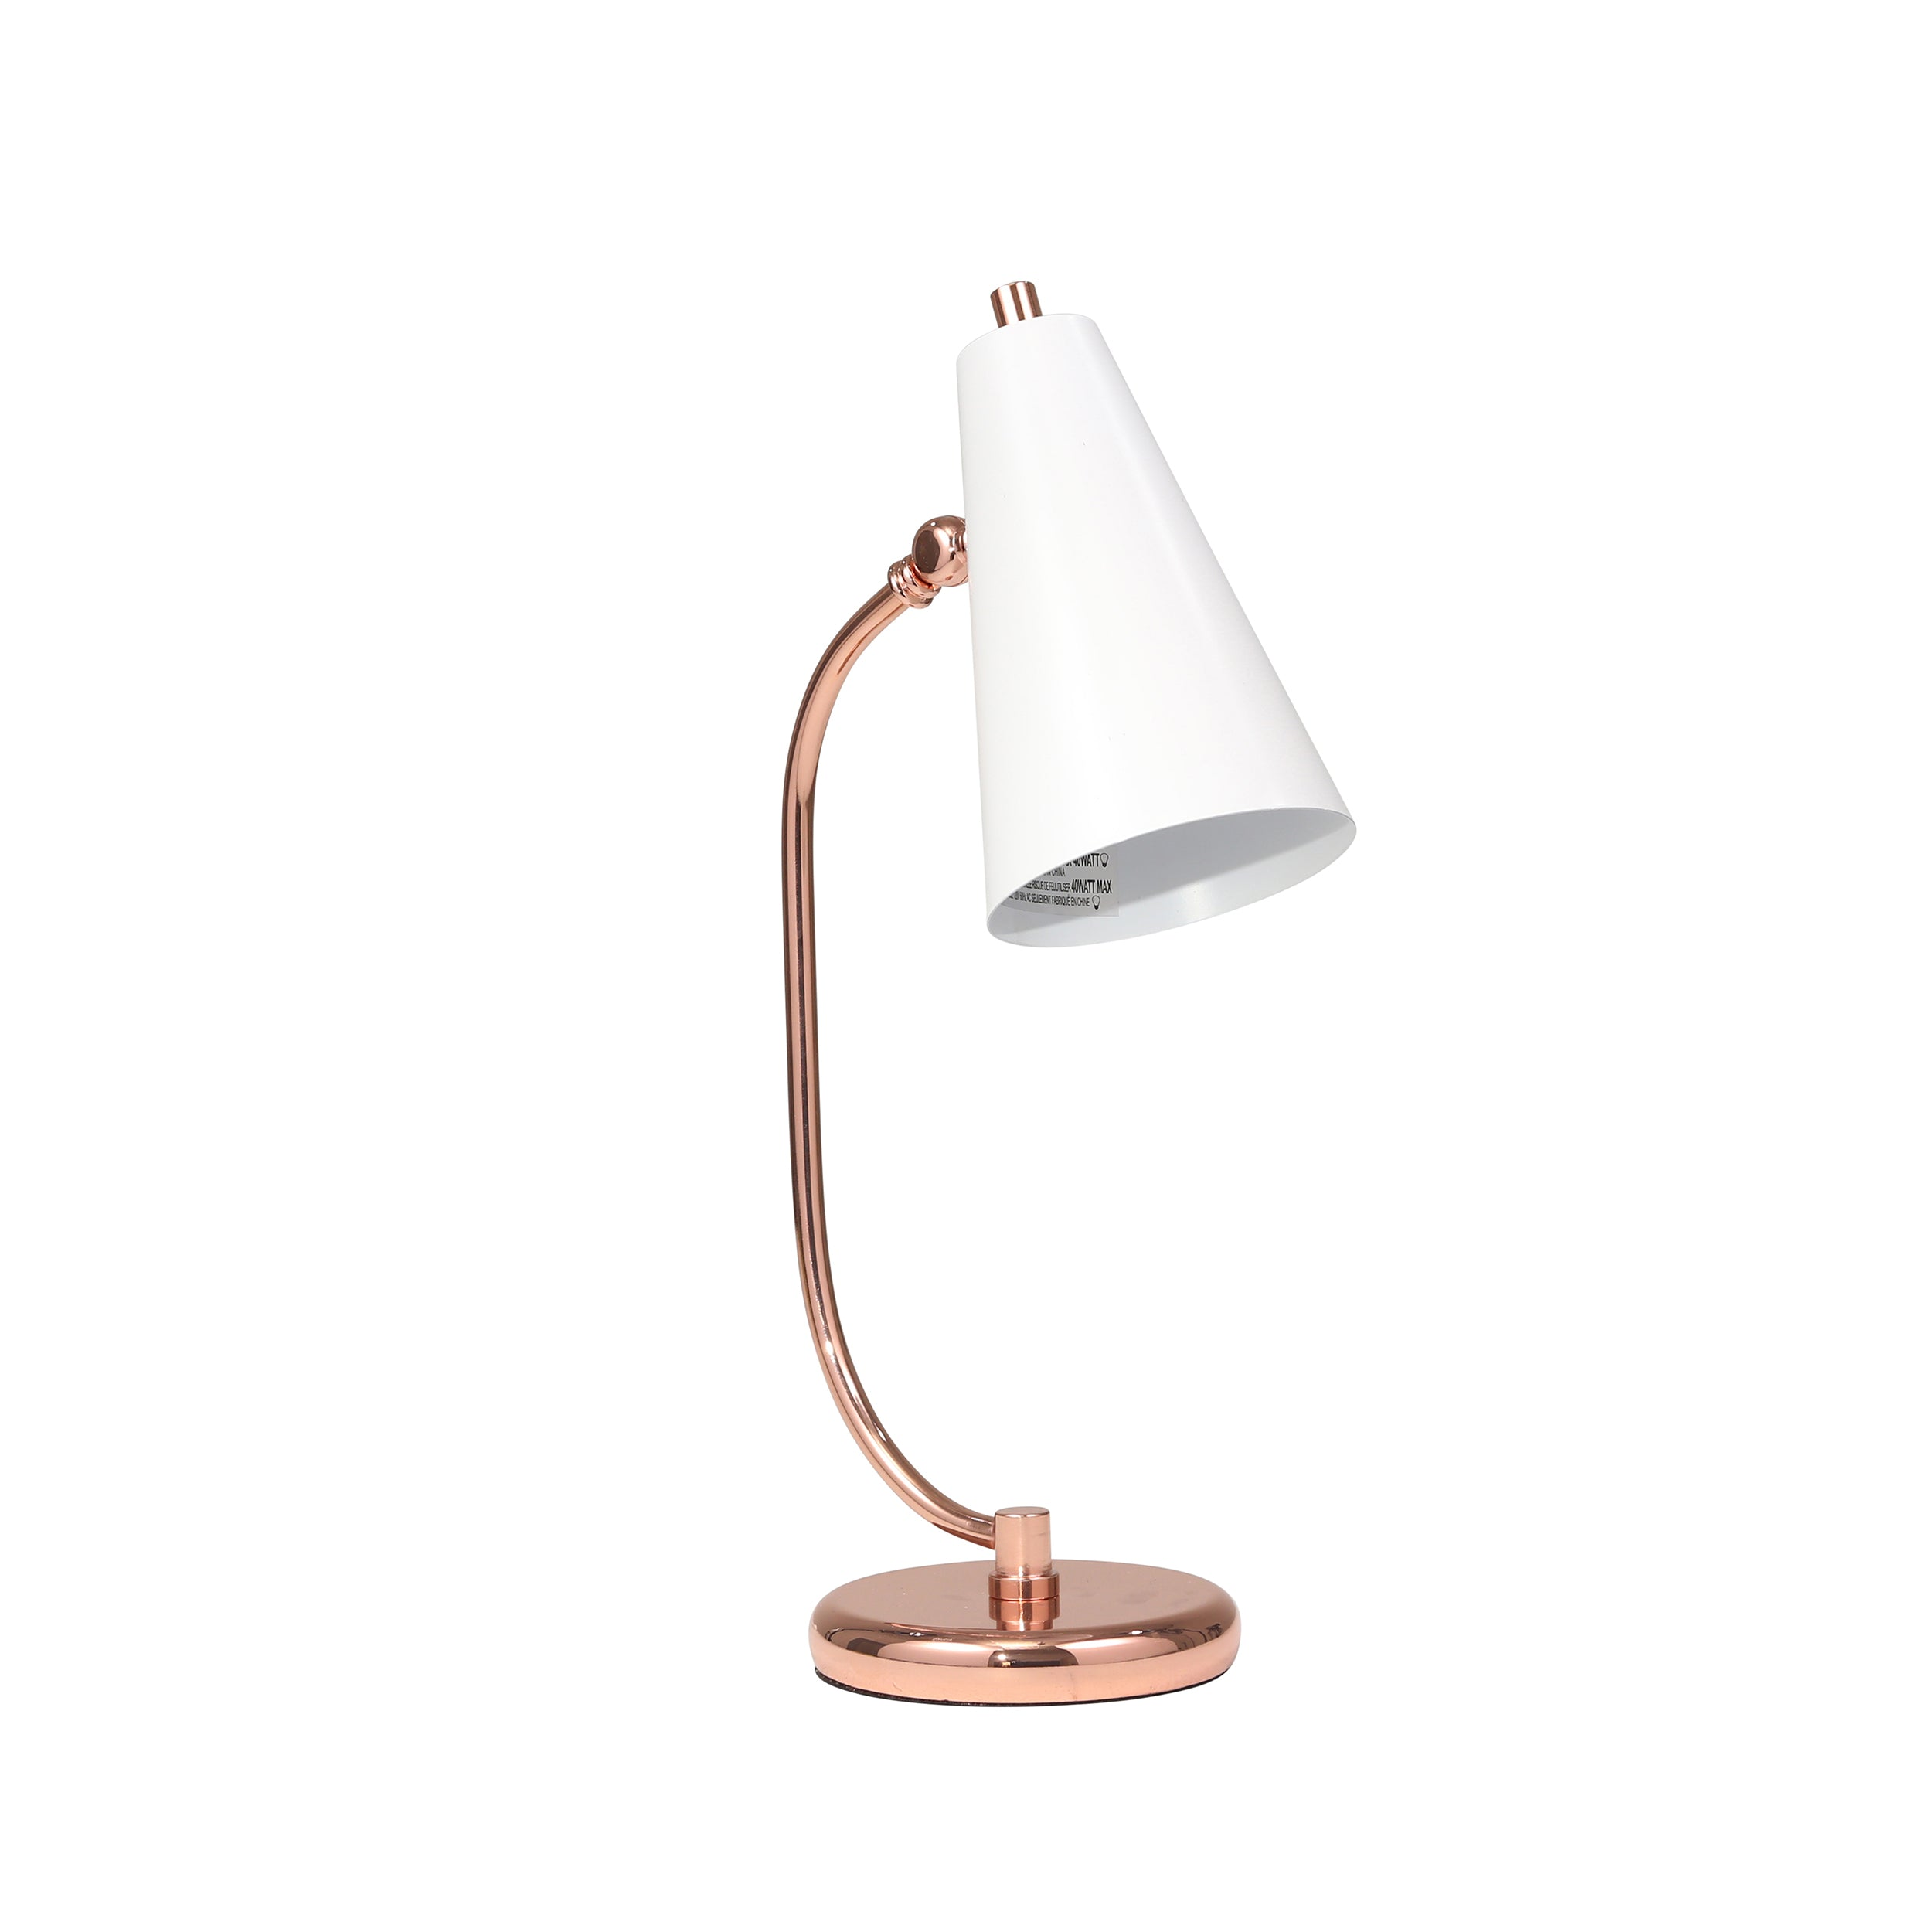 "METAL 20"" DESK LAMP, WHITE/ROSEGOLD - Casa Muebles"